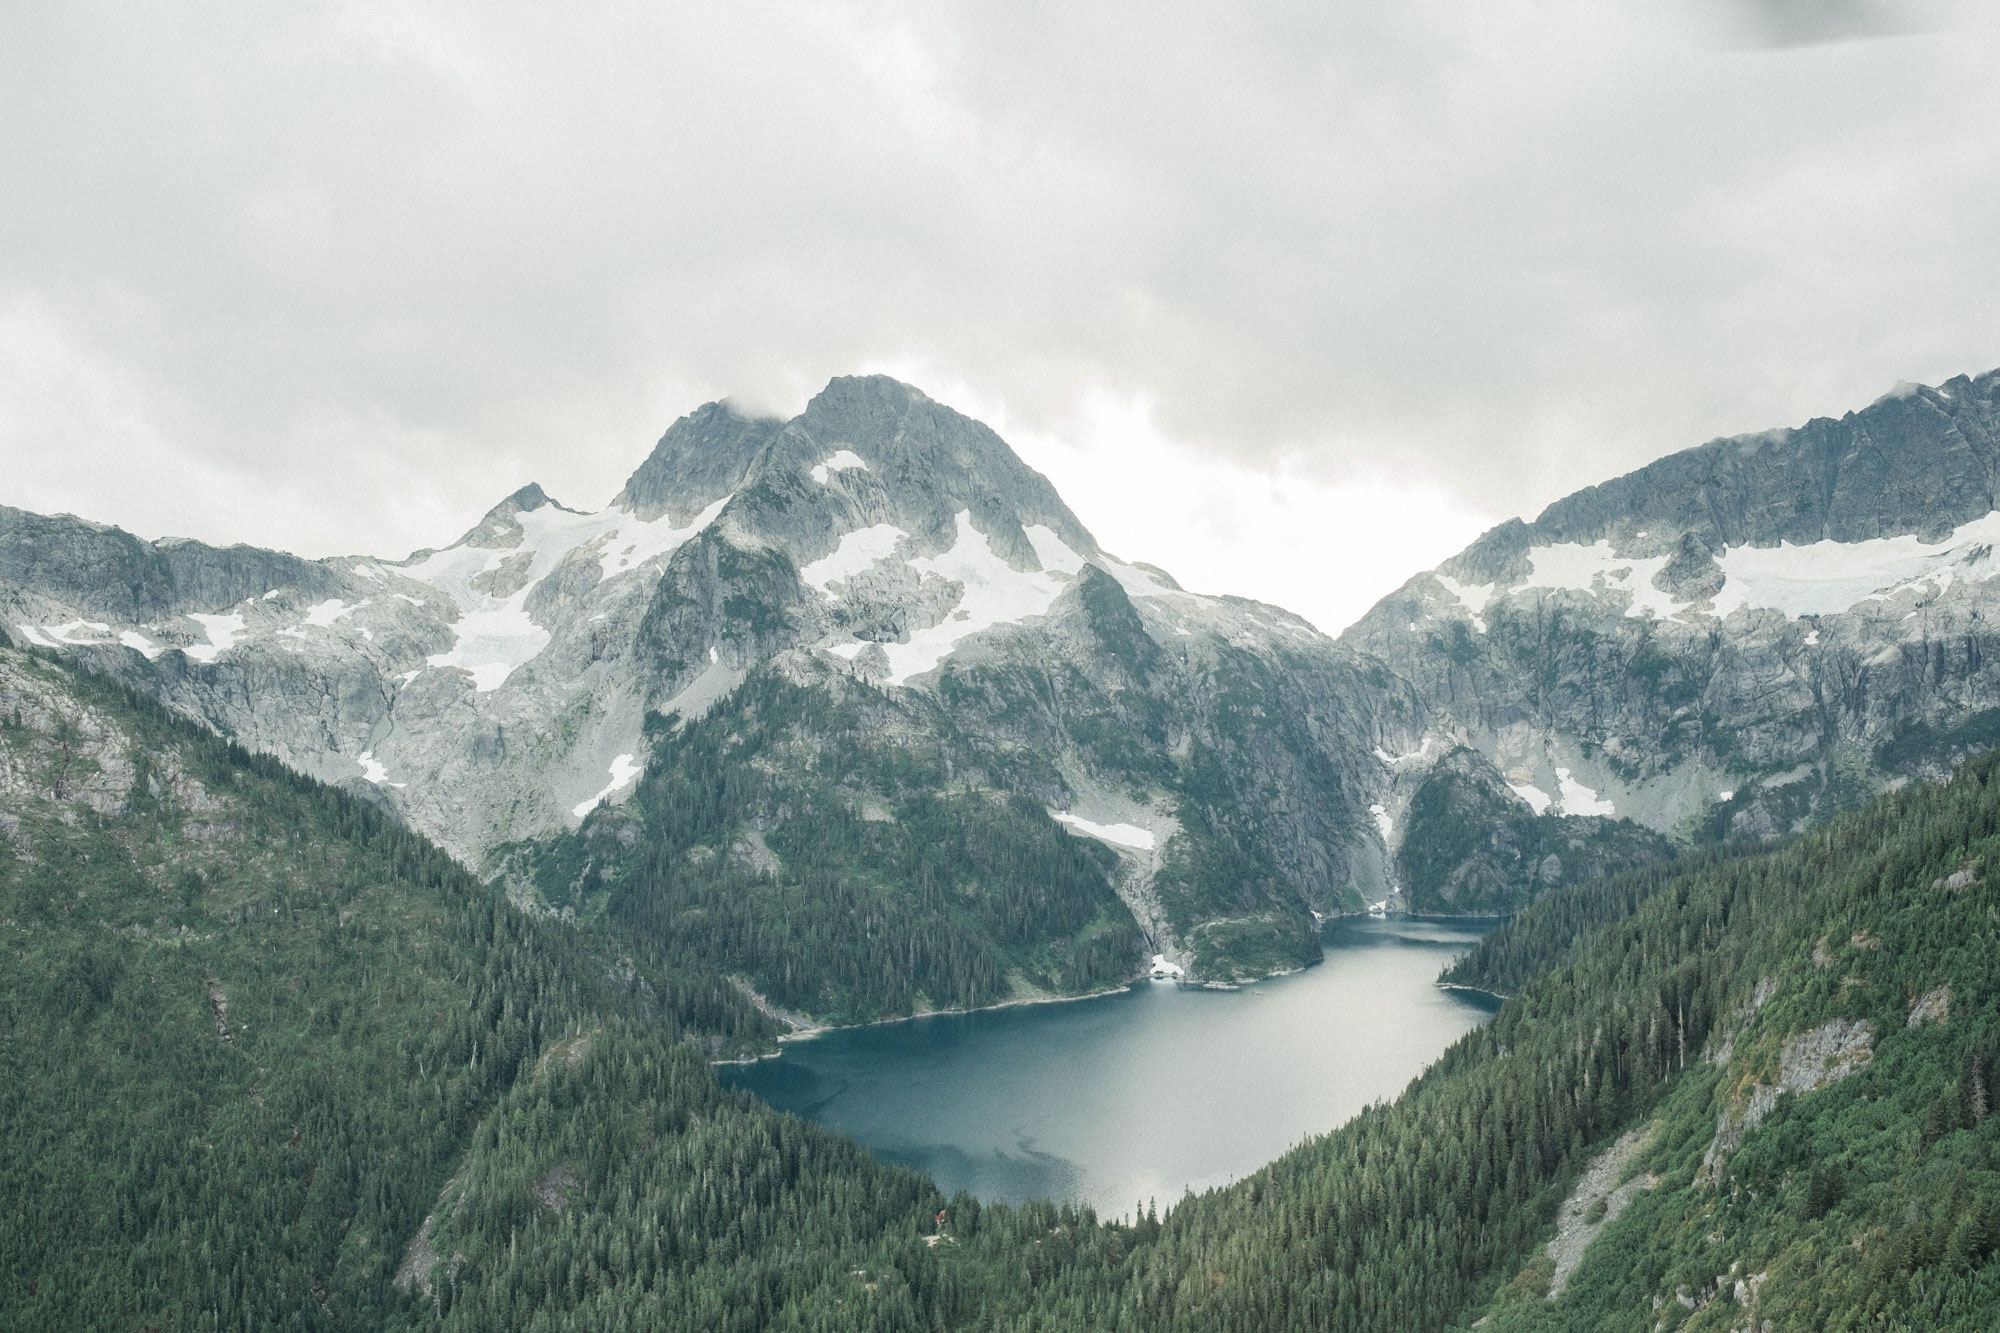 Epic Mountain Helicopter Elopement in Squamish, BC, CA | Luxe Mountain Weddings